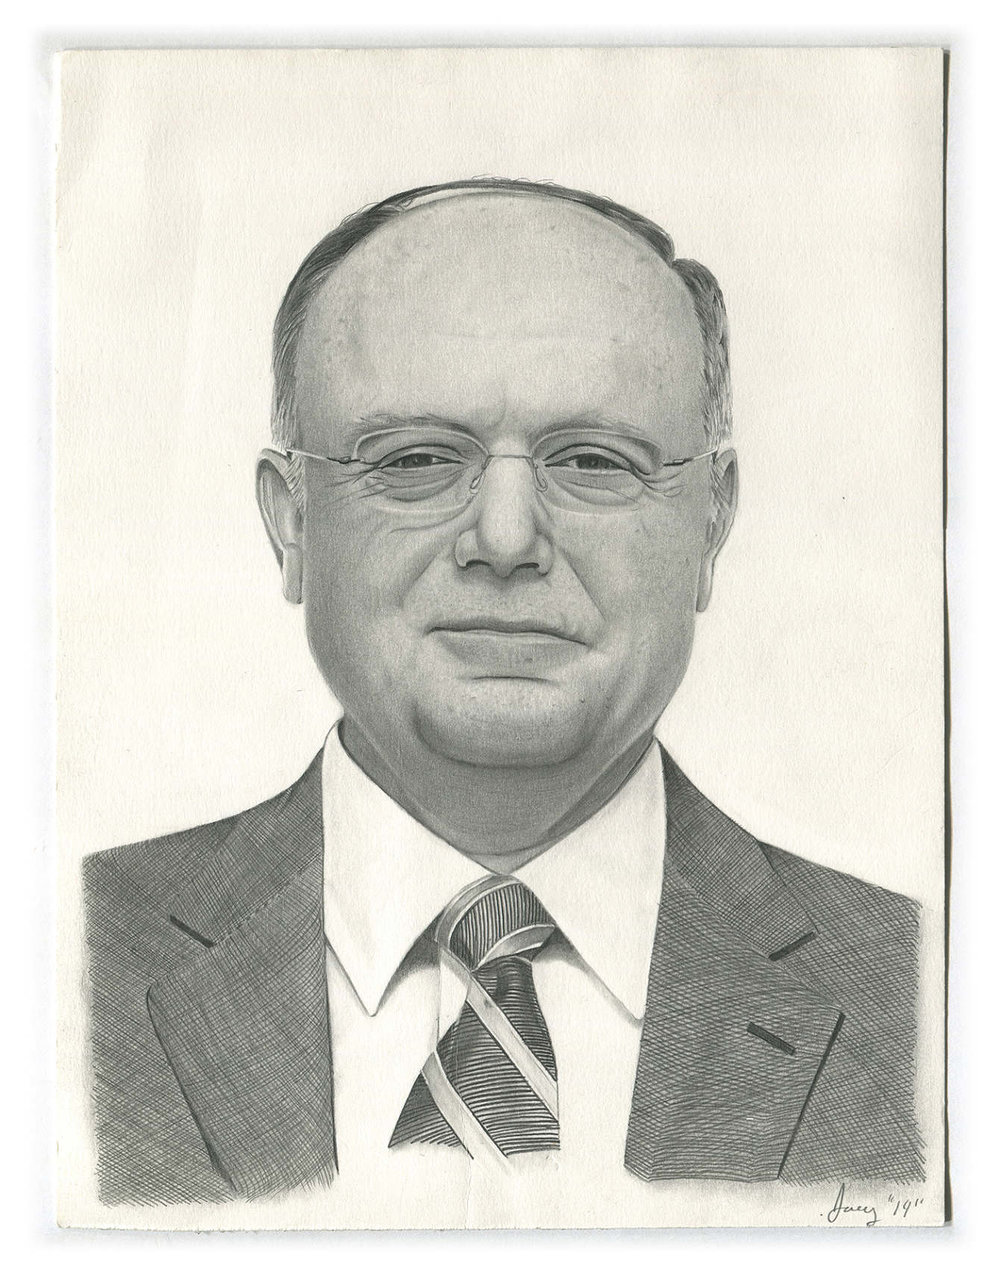 CEO of Pfizer as drawn by a man serving four years for auto theft -